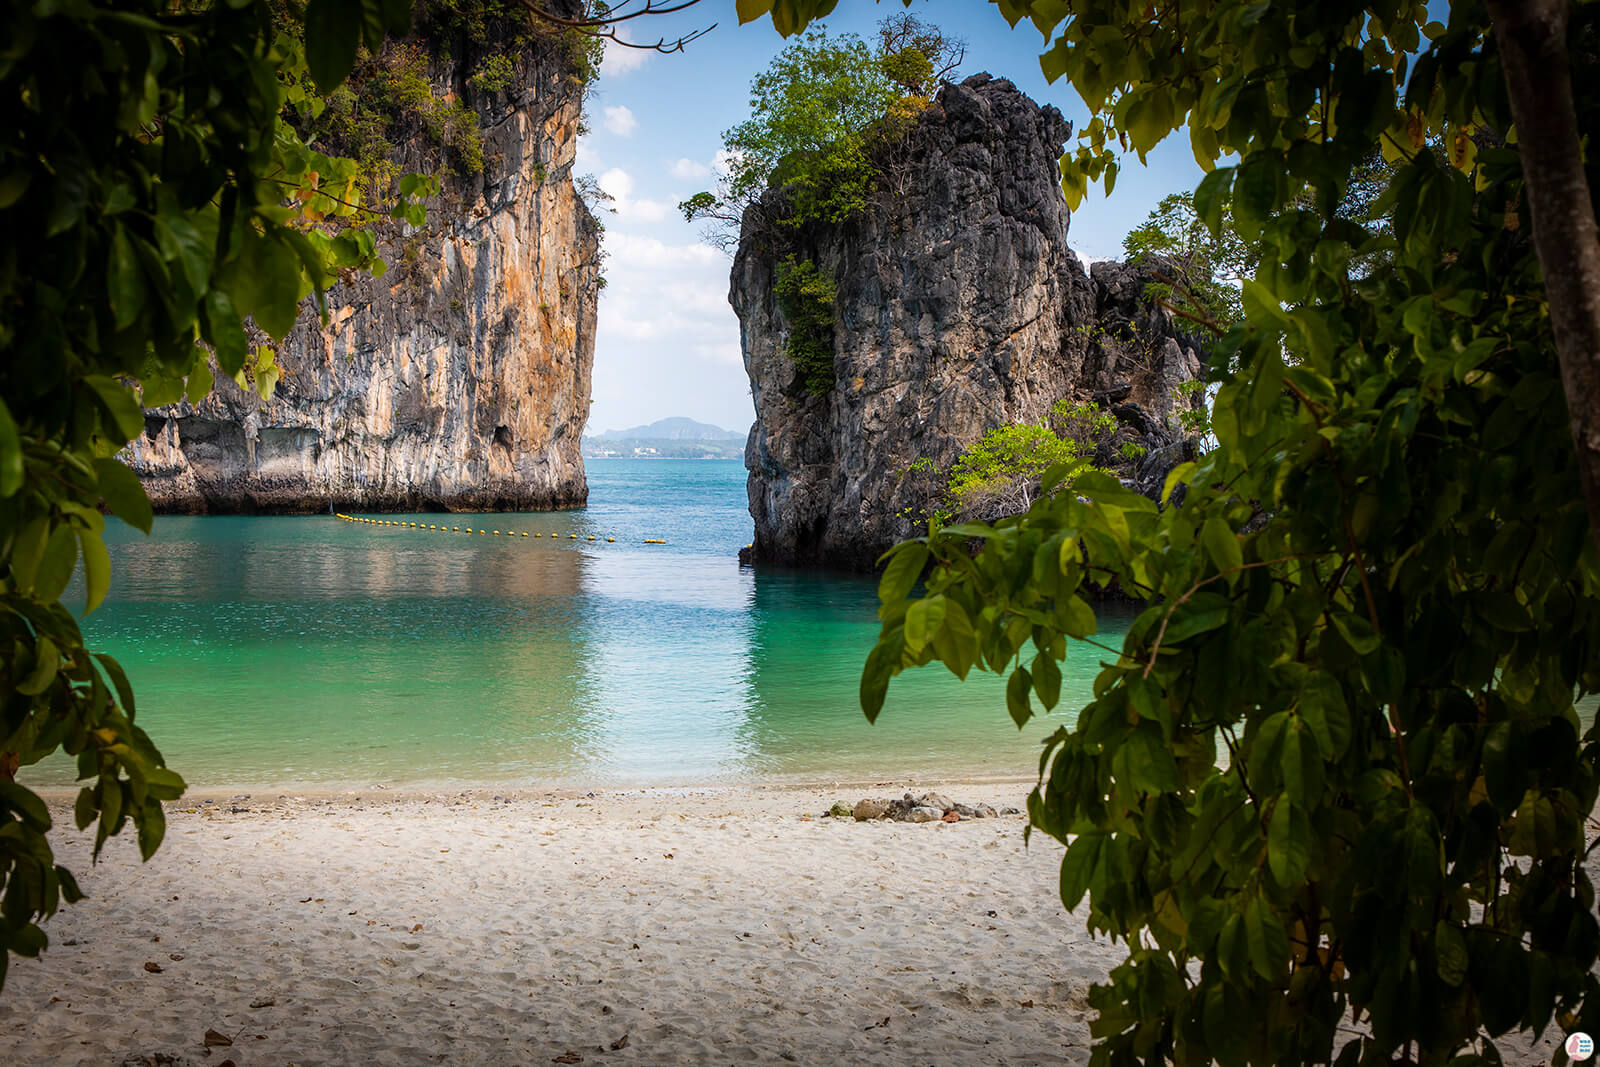 Hong Islands - Ko Hong - Visit the True Paradise Islands of Krabi, Thailand